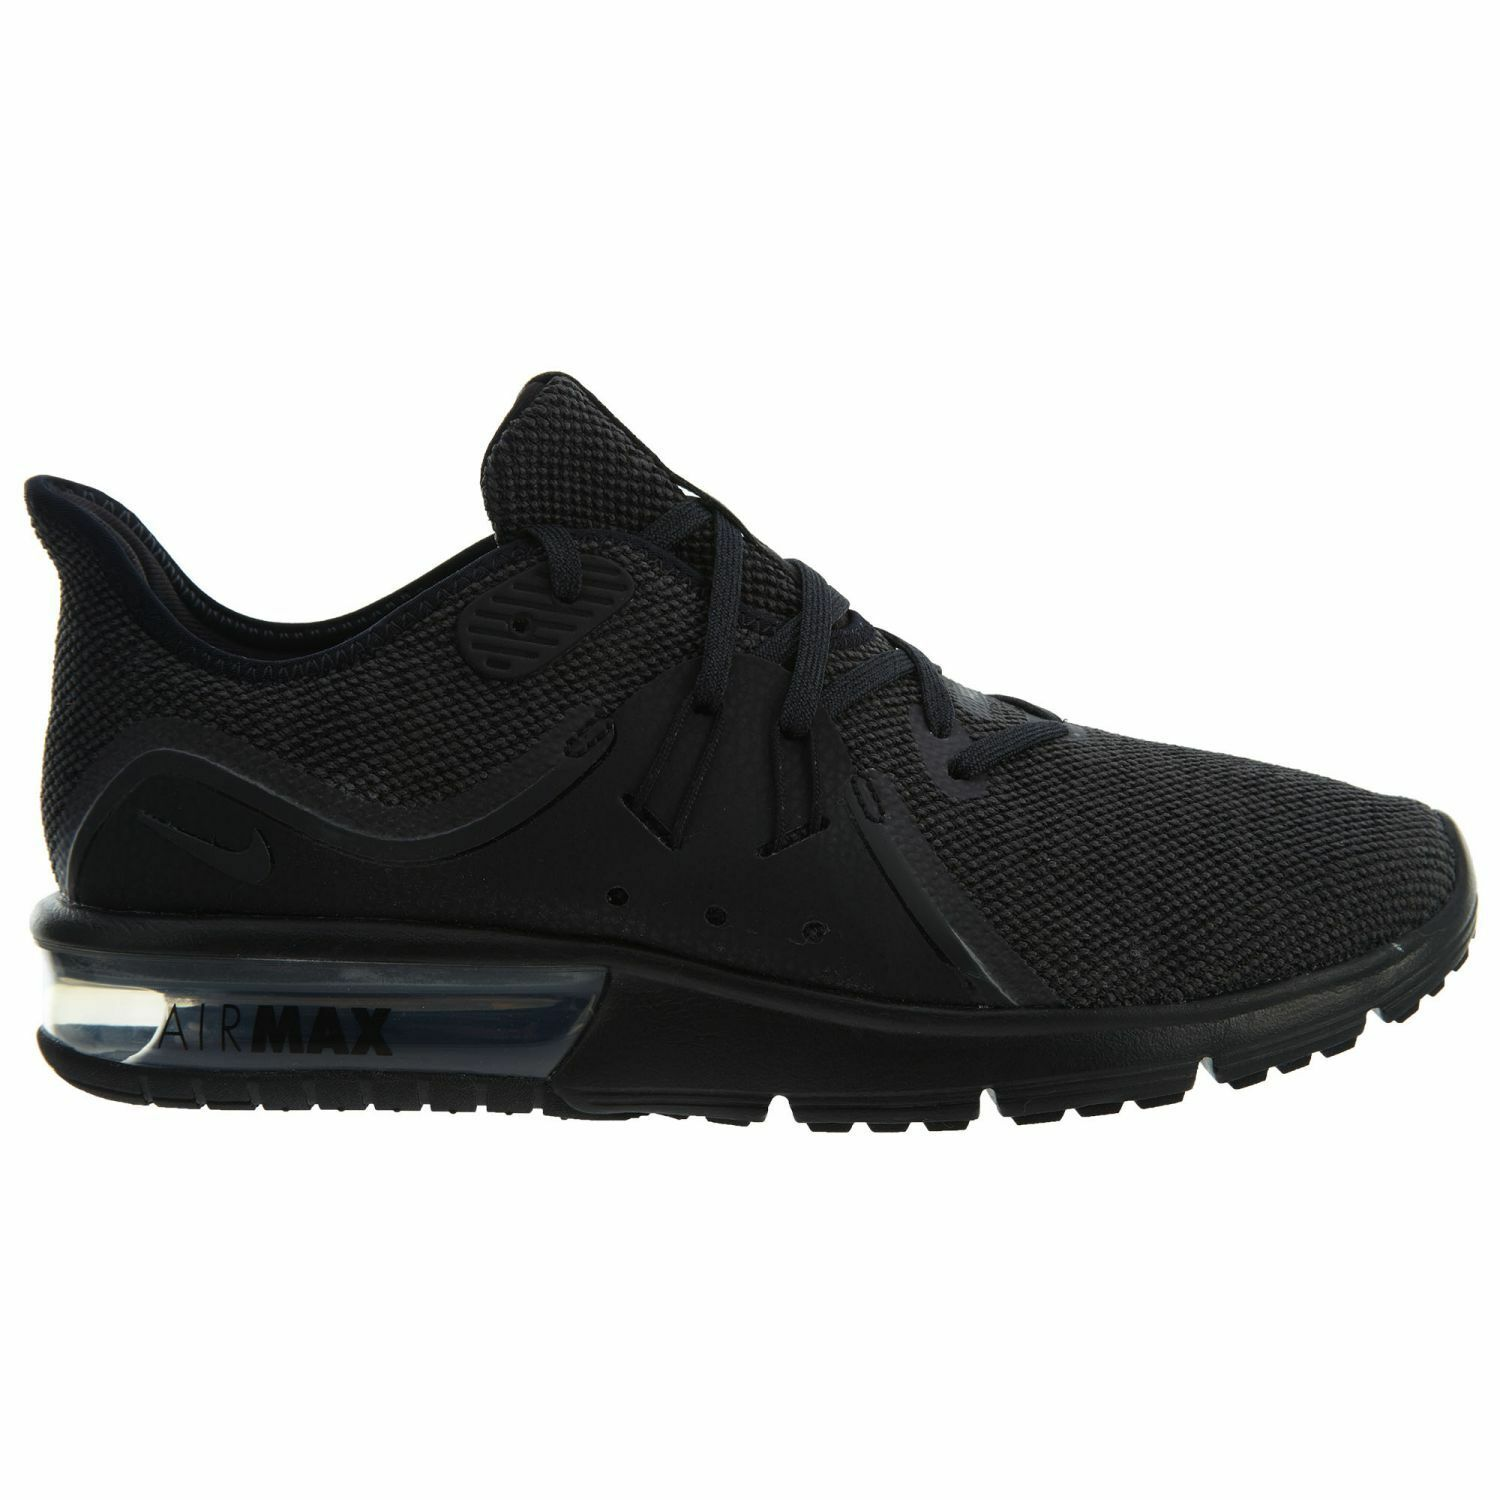 Nike Air Max Sequent 3 Mens 921694-010 Black Stretch Knit Running Shoes Sz 11.5 Brand discount